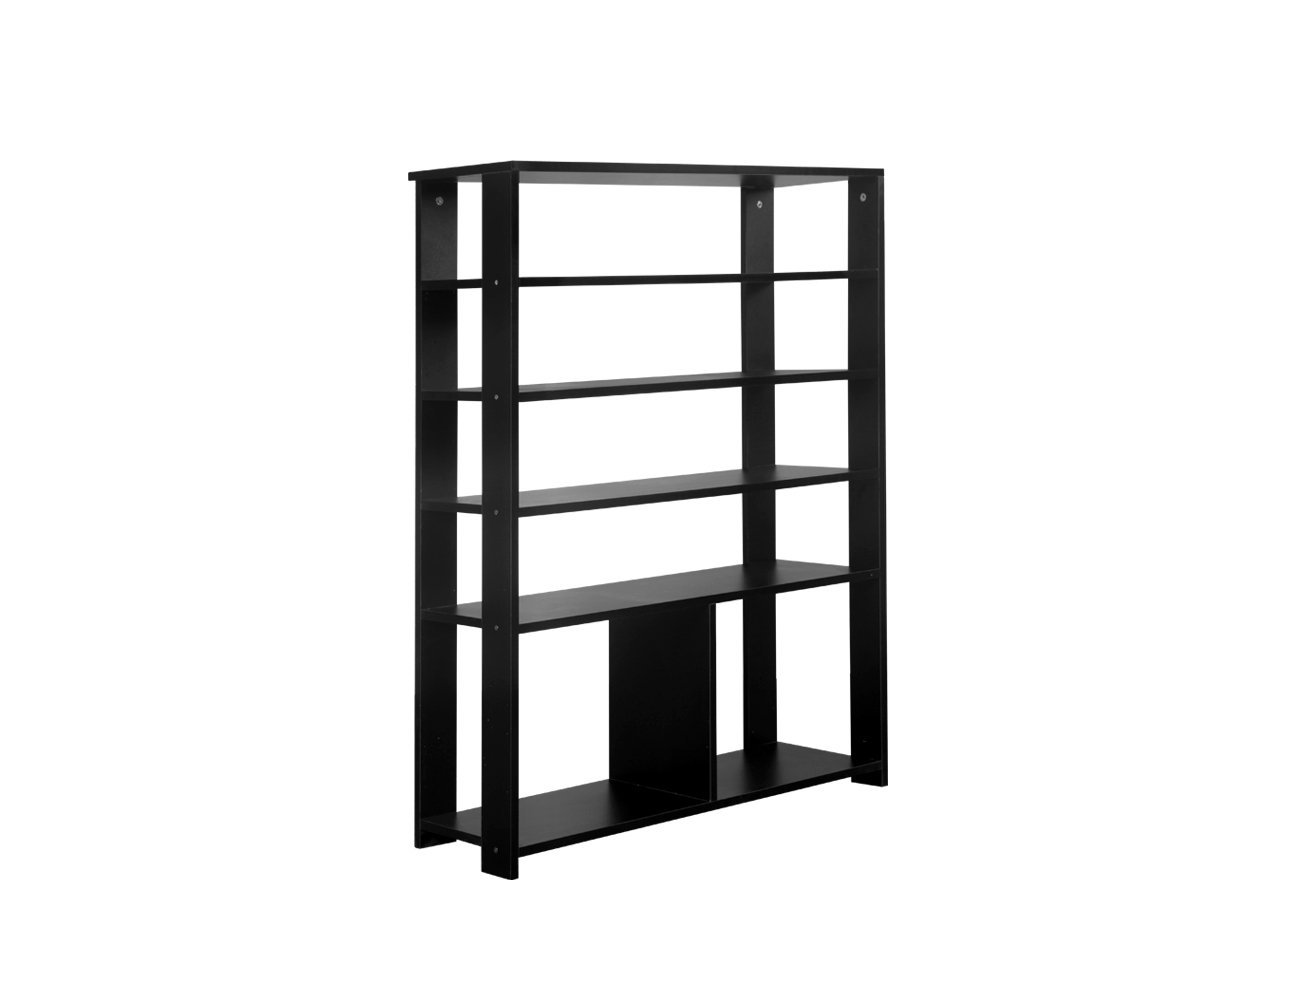 6 Layer Storage Shelf - Black